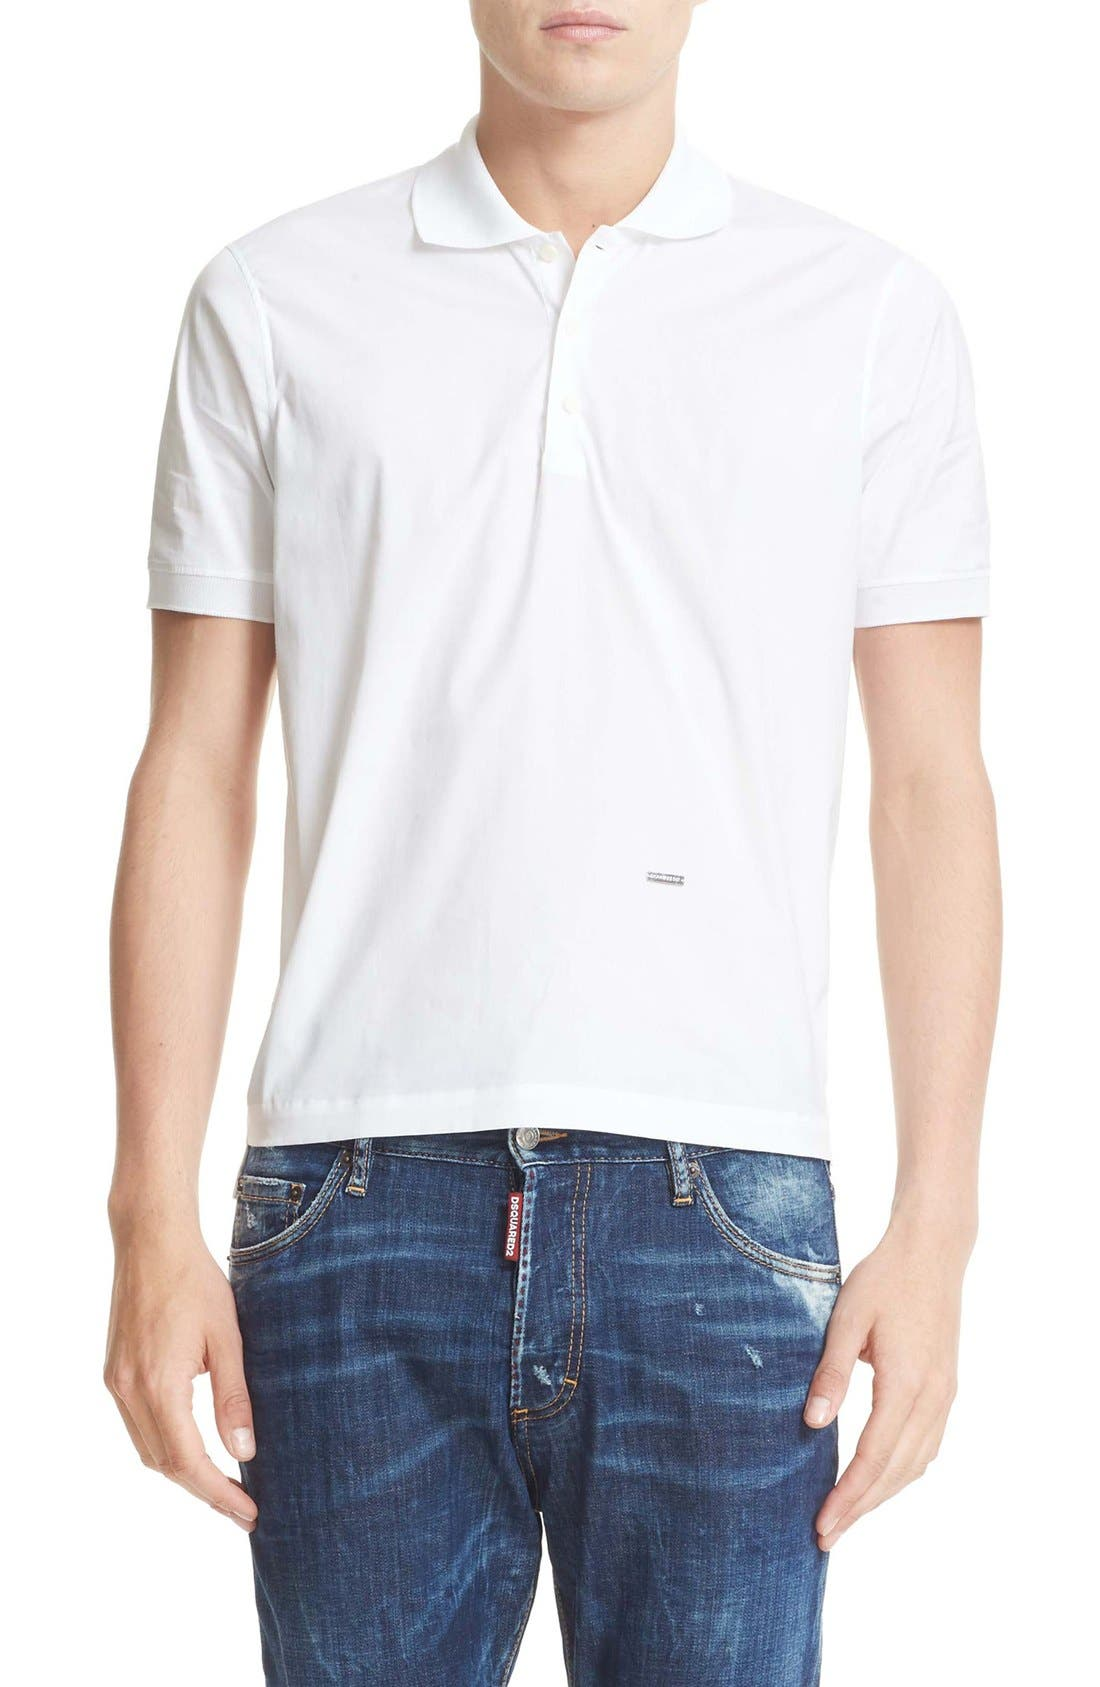 Main Image - Dsquared2 Extra Trim Fit Polo